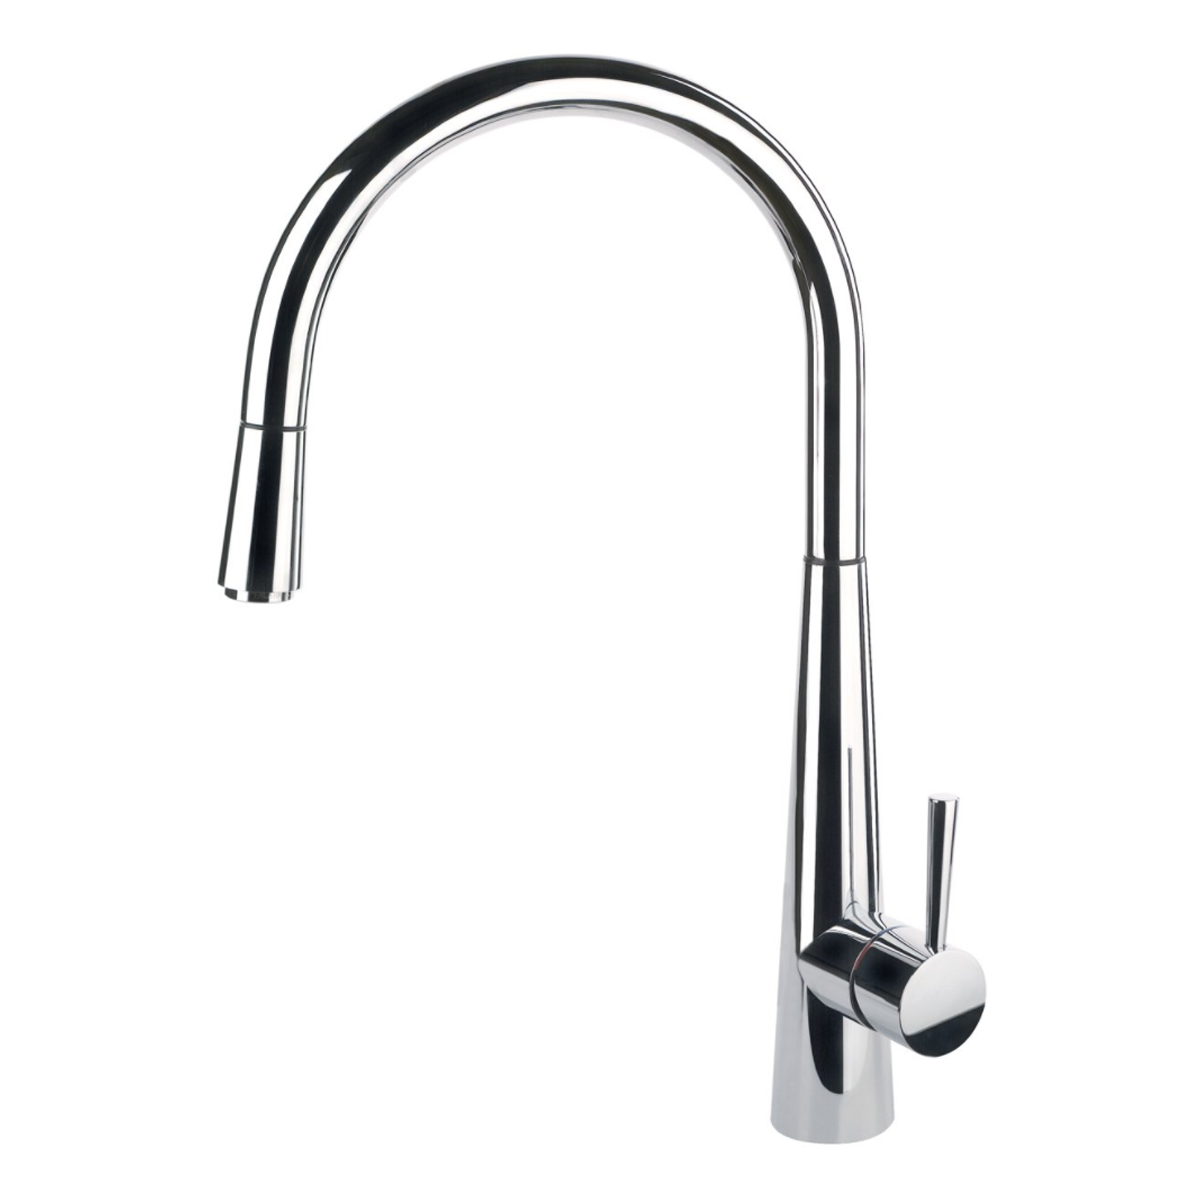 Gessi 20577 Just Sink Kitchen Mixer with Pull-Out Tap